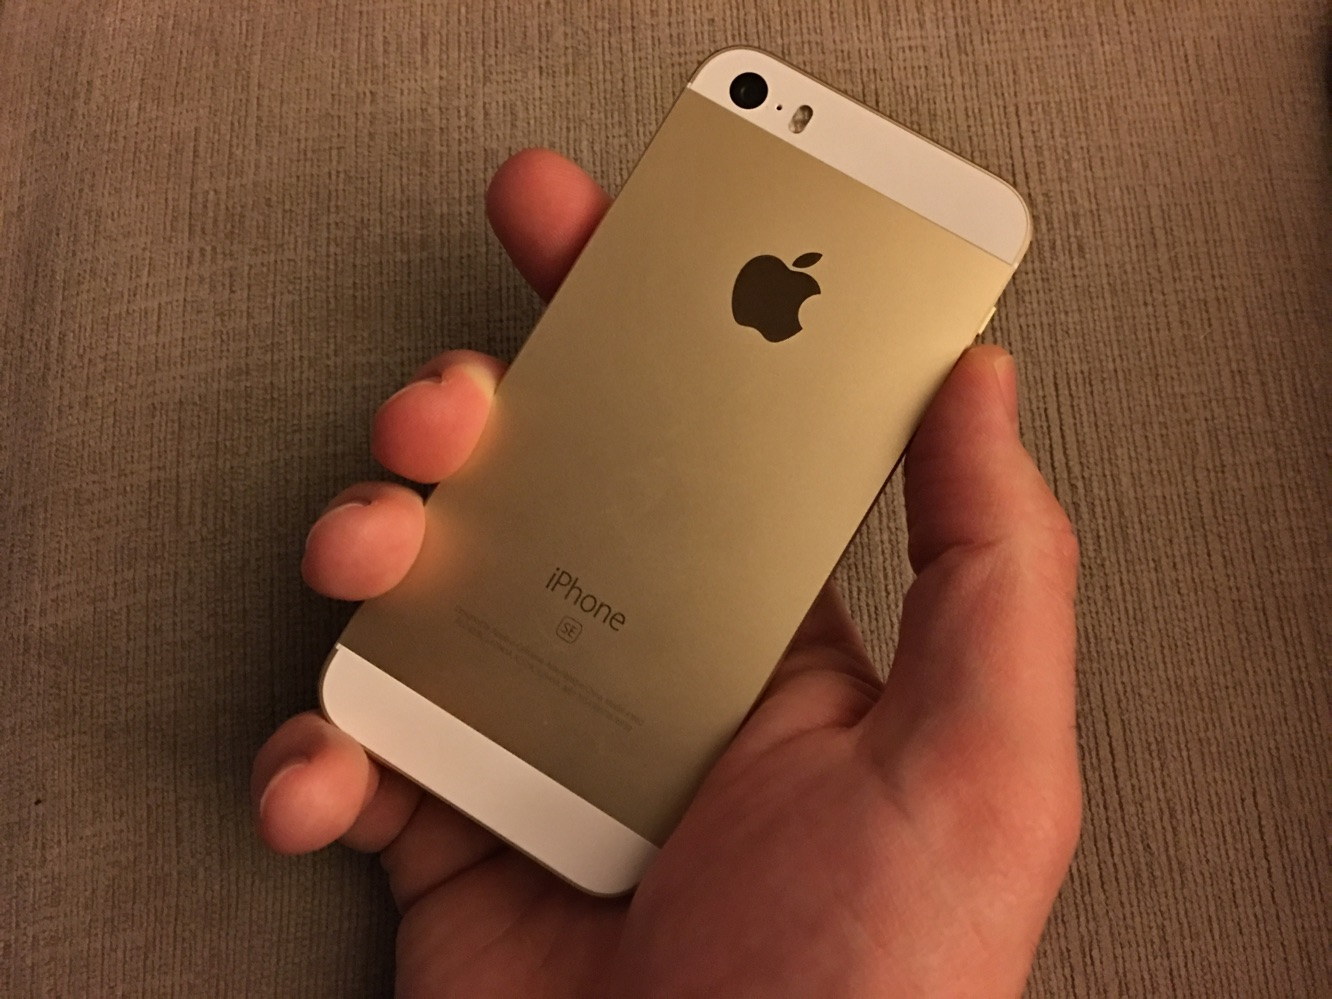 News: Apple plans to begin iPhone manufacturing in India starting with the iPhone SE